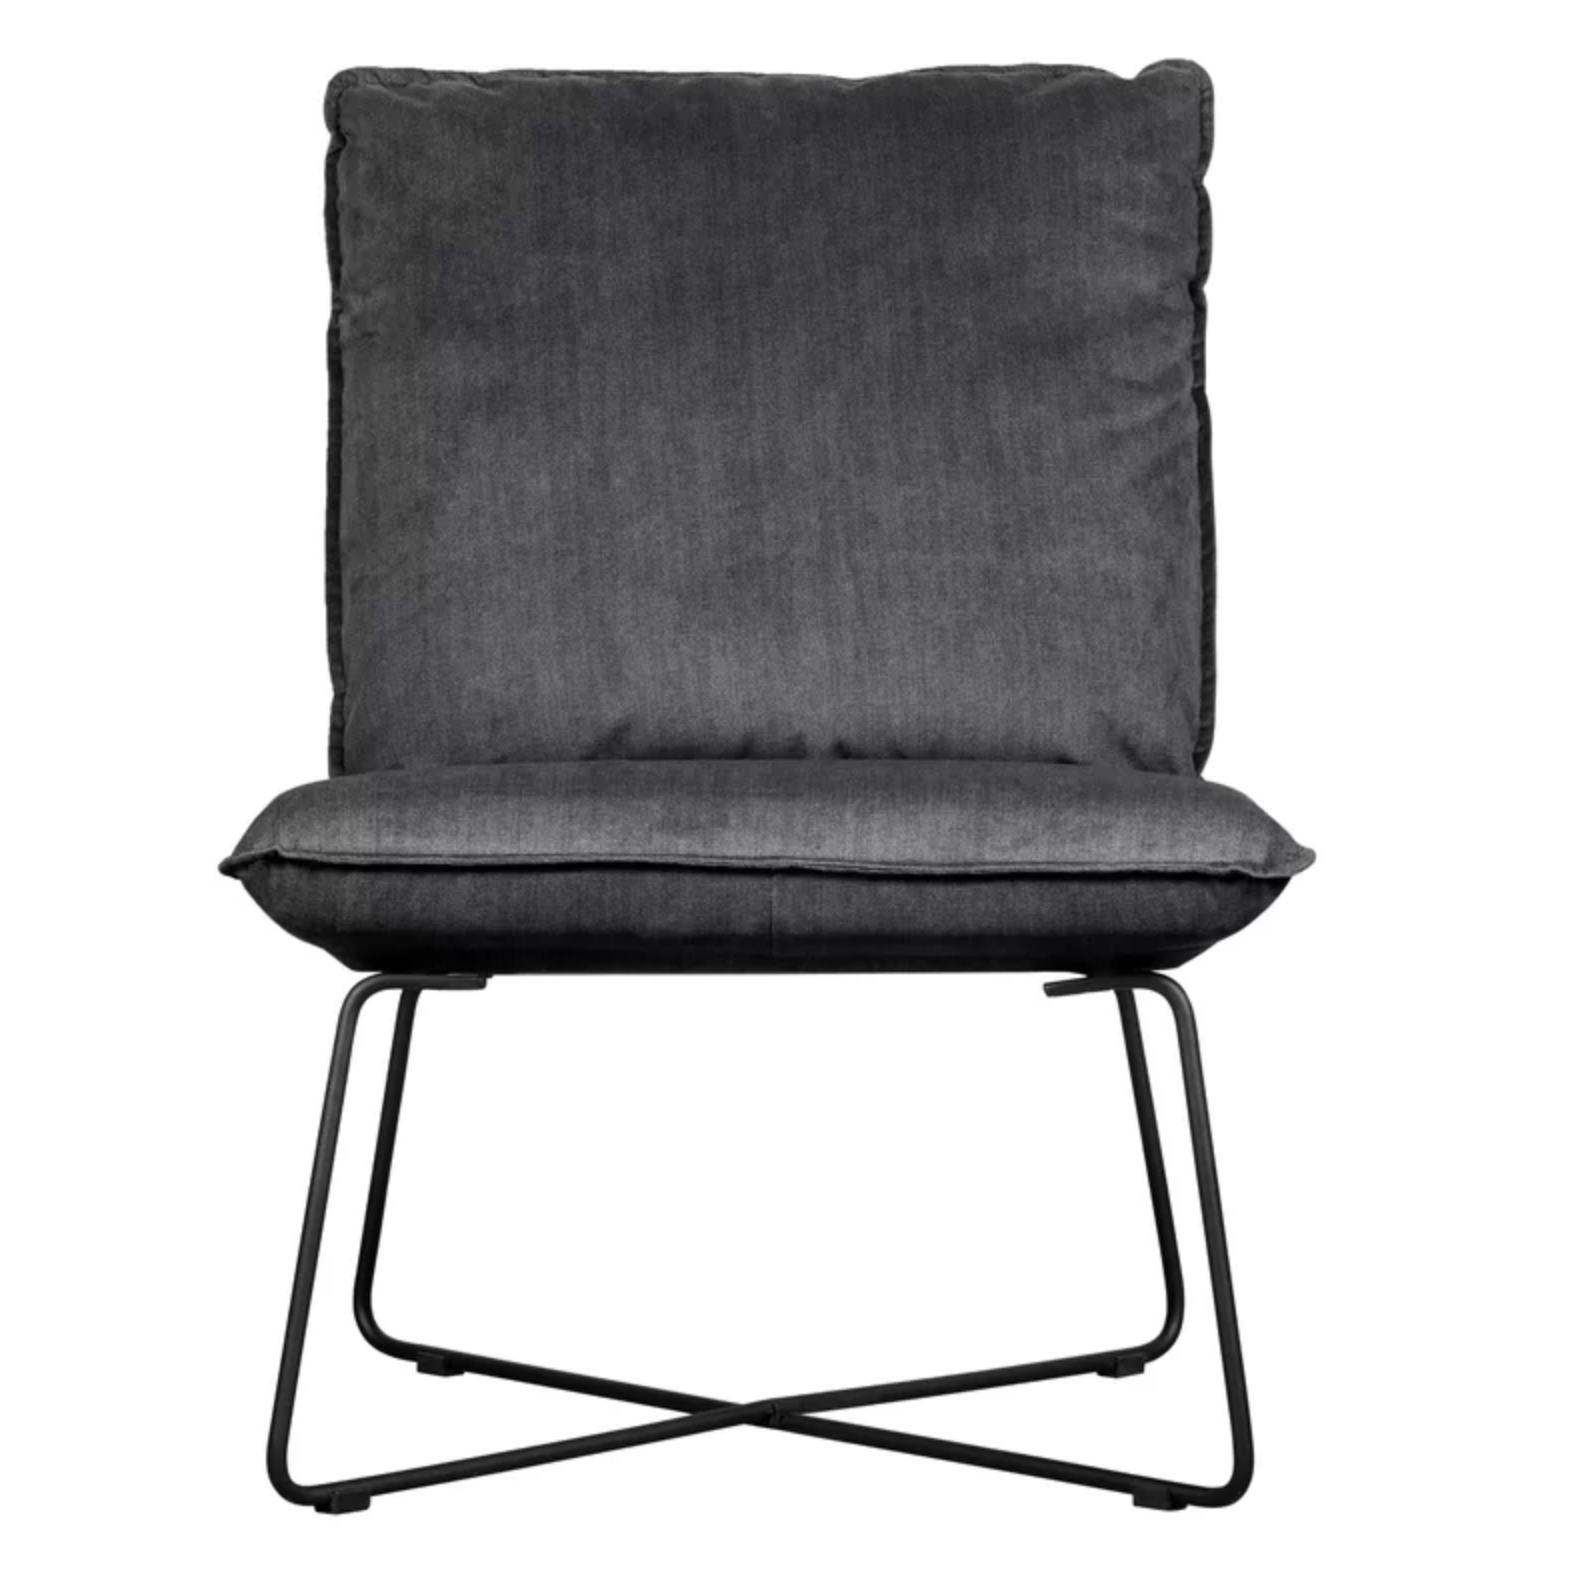 Accent Chair Roundup | Modern, Industrial, Rustic, Beach, Boho Accent and Arm Chairs | Miranda Schroeder Blog